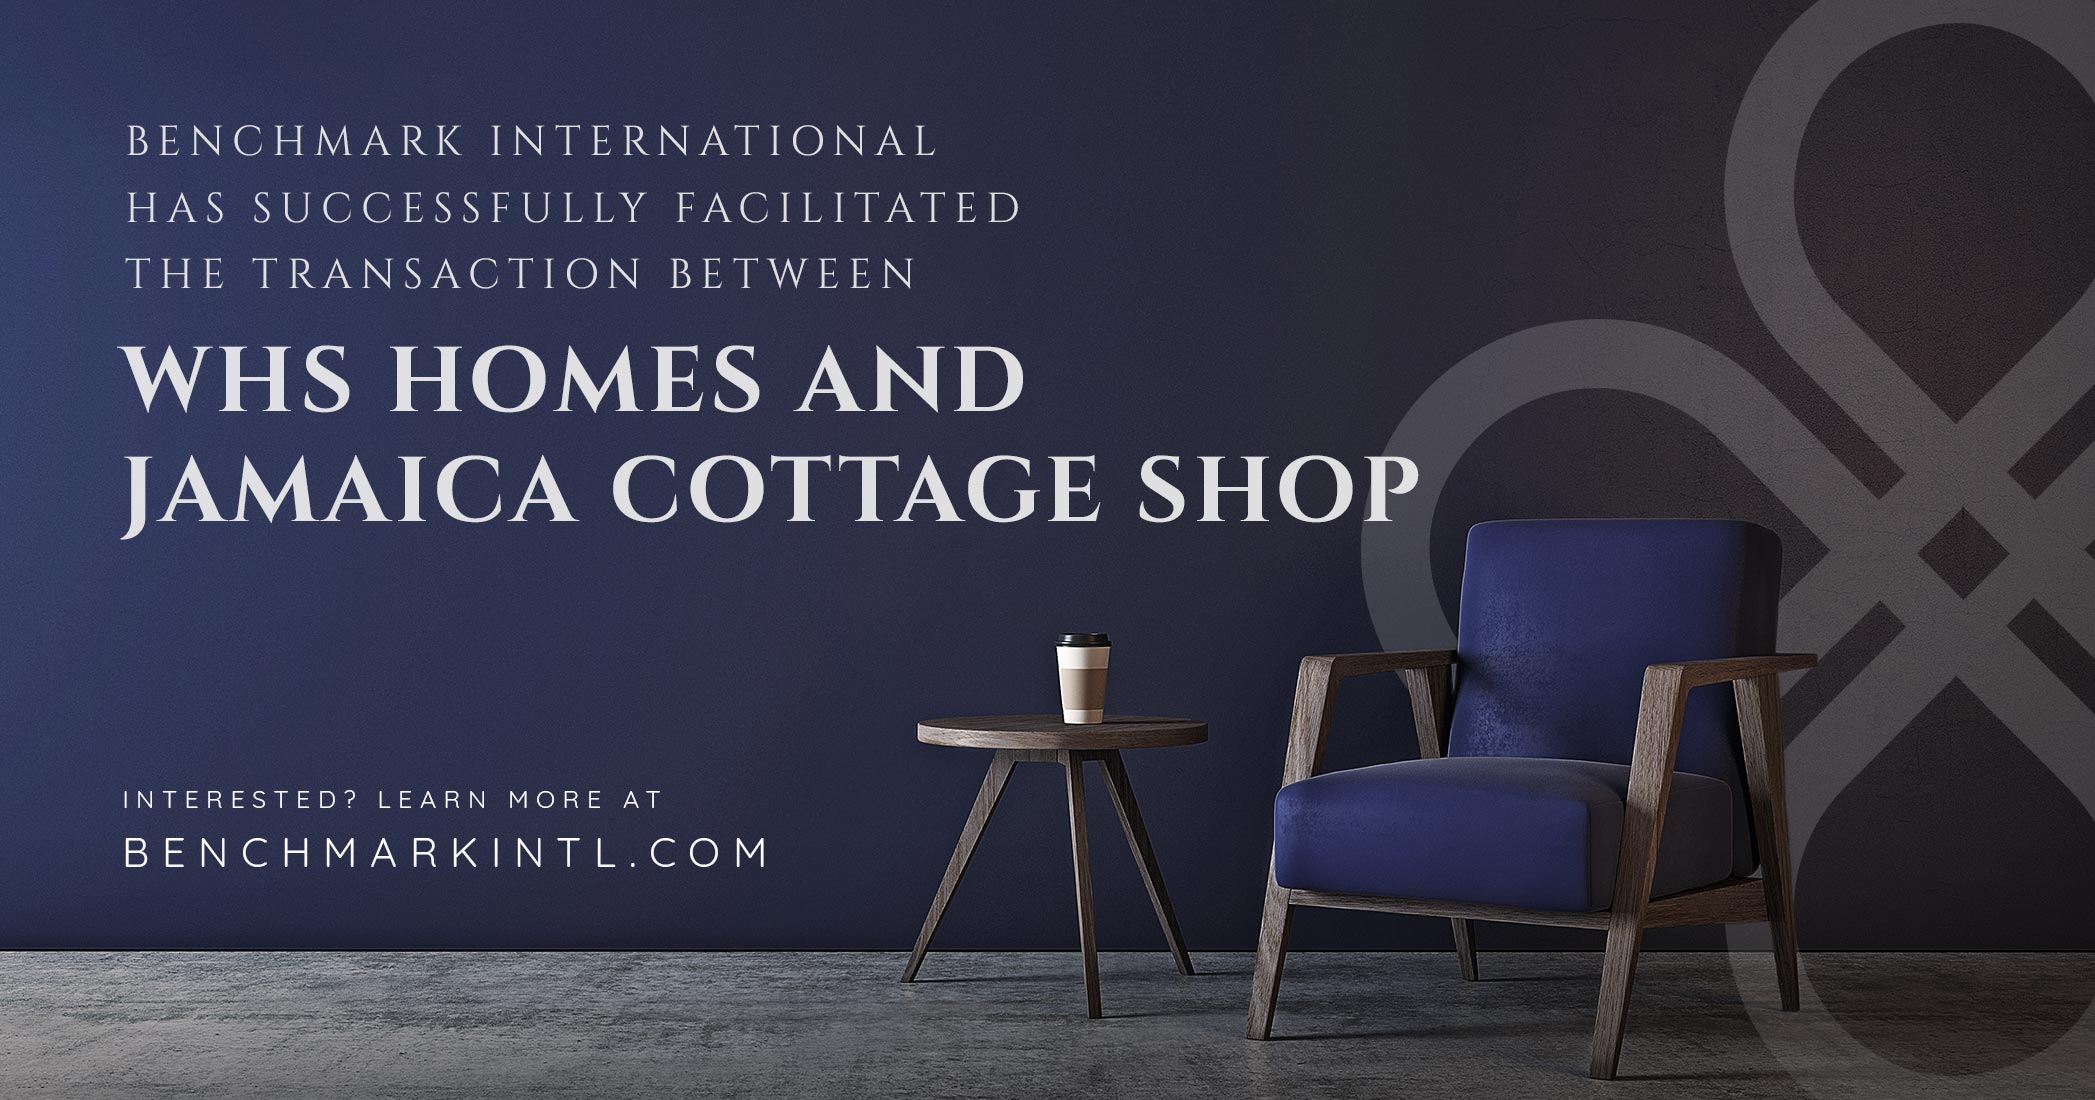 Benchmark International Successfully Facilitated the Transaction Between WHS Homes and Jamaica Cottage Shop